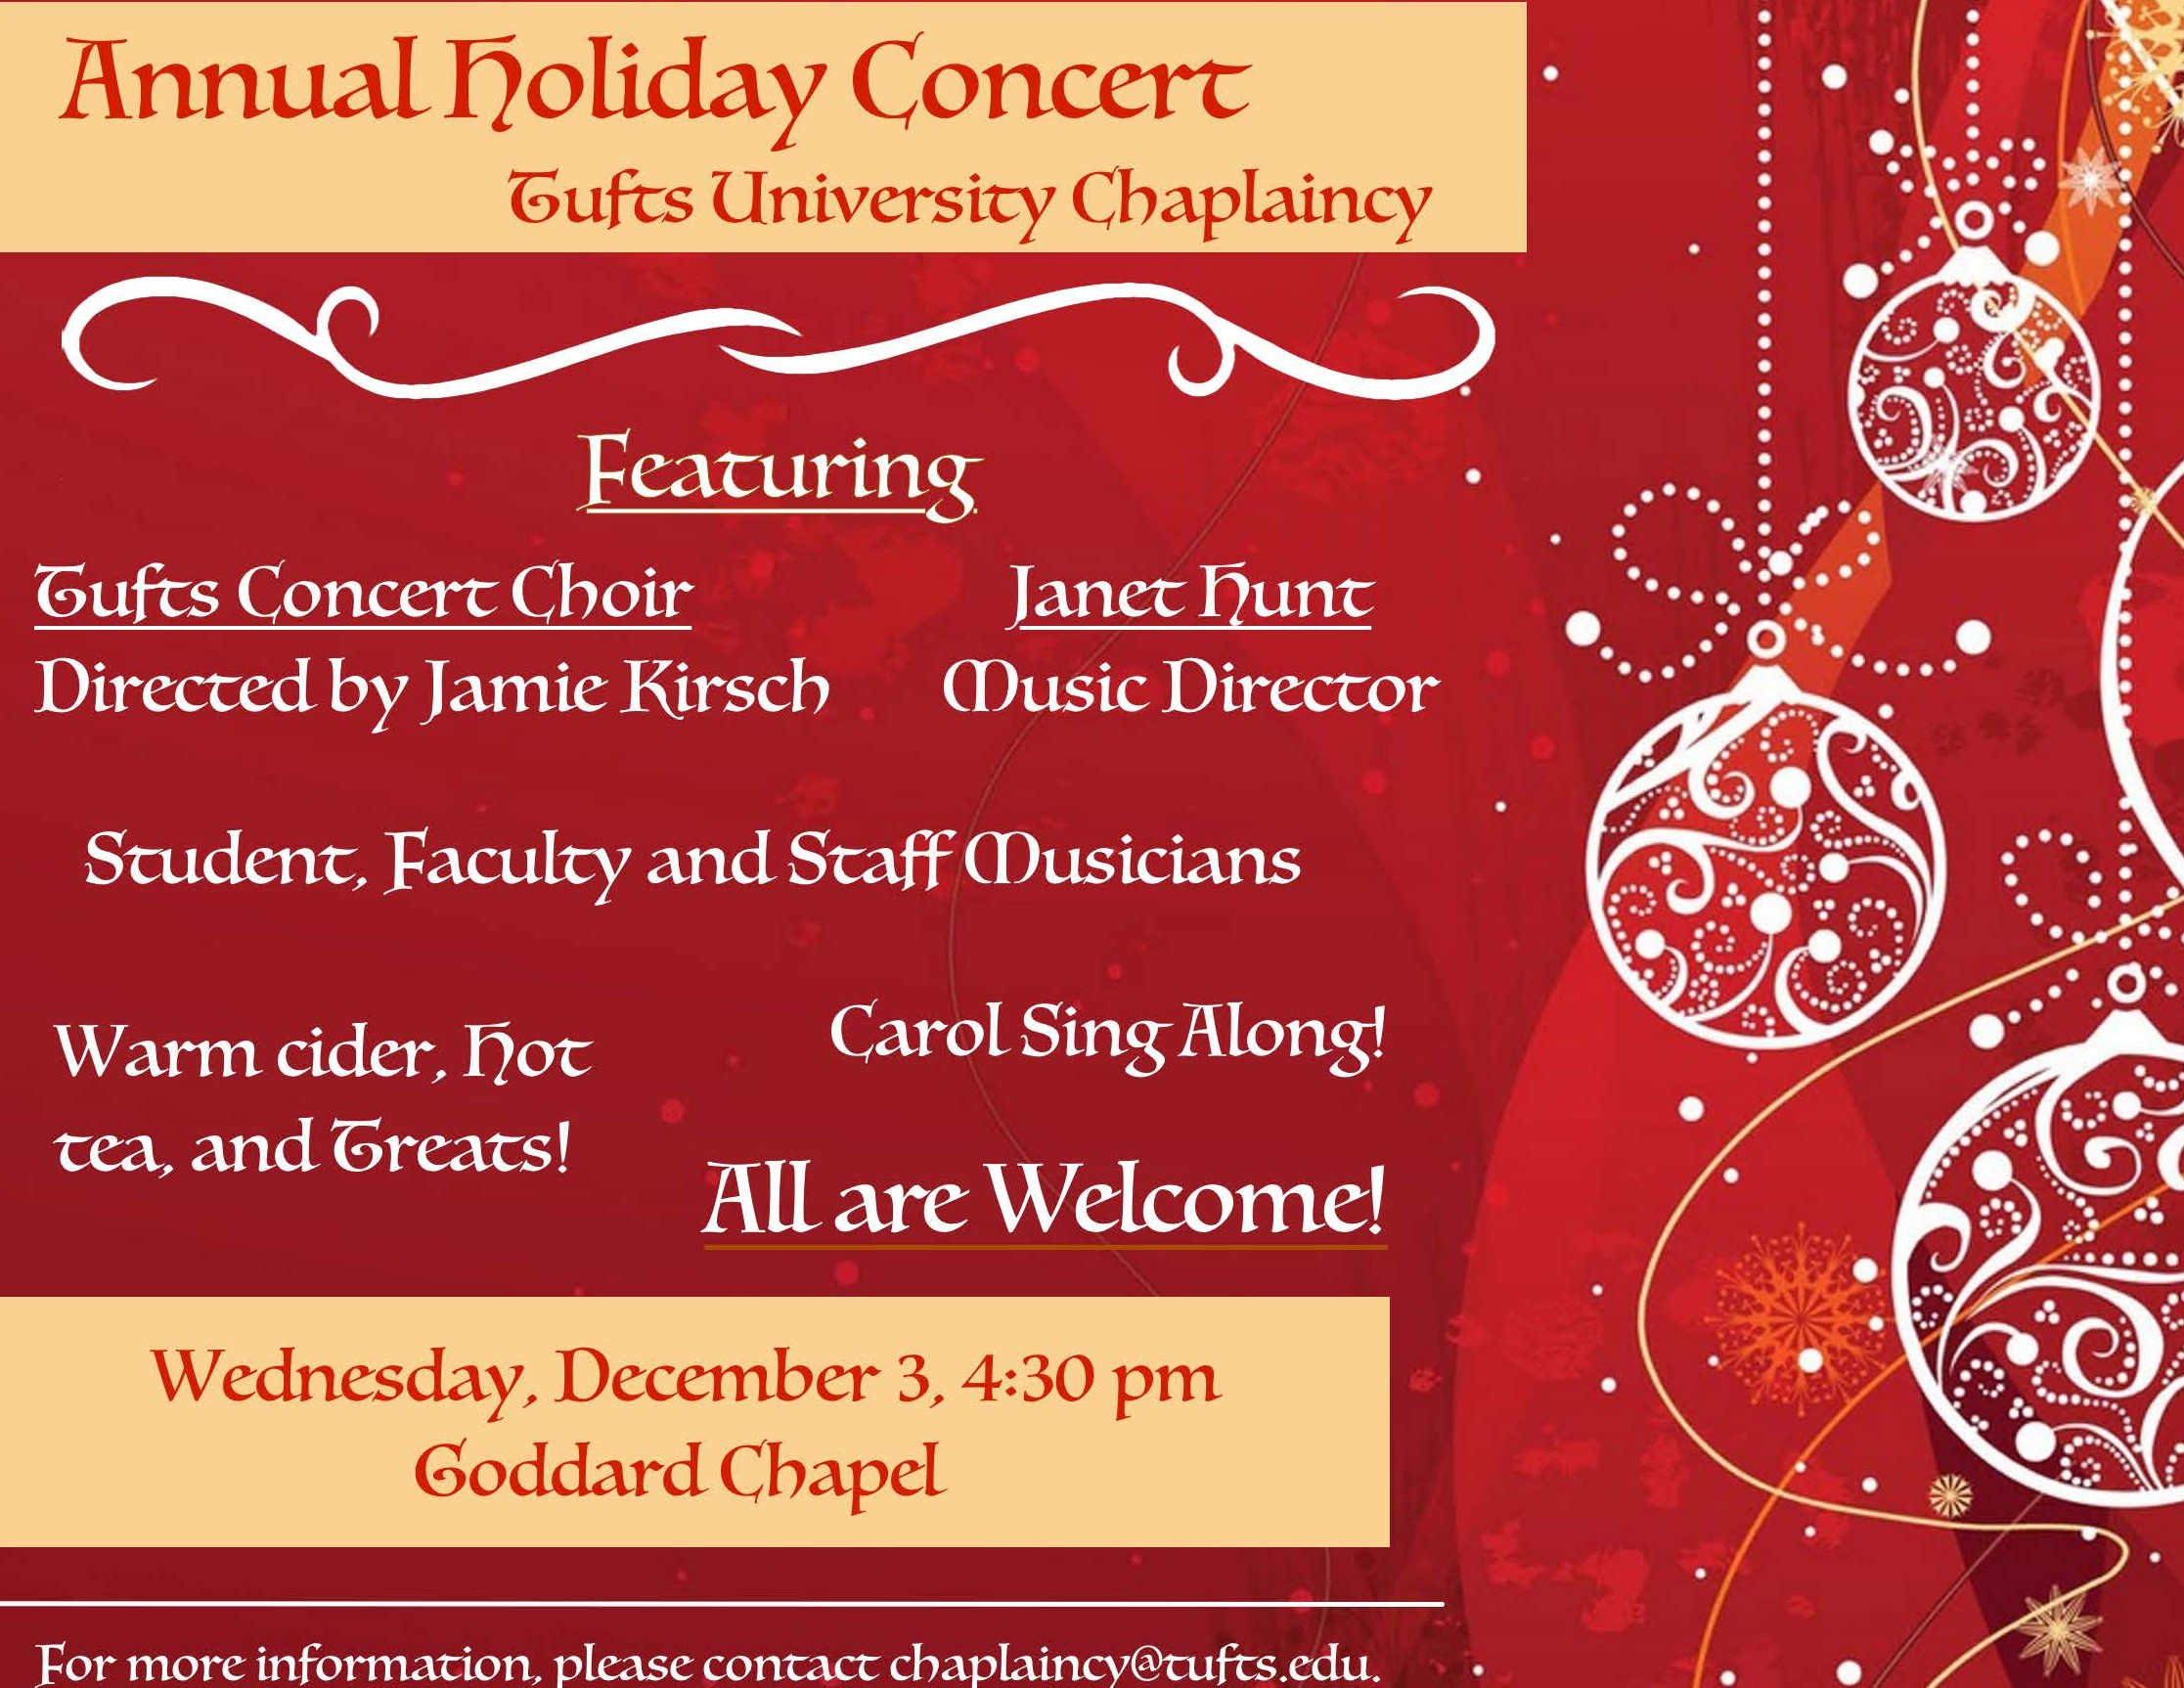 Chaplaincy Holiday Concert[8]